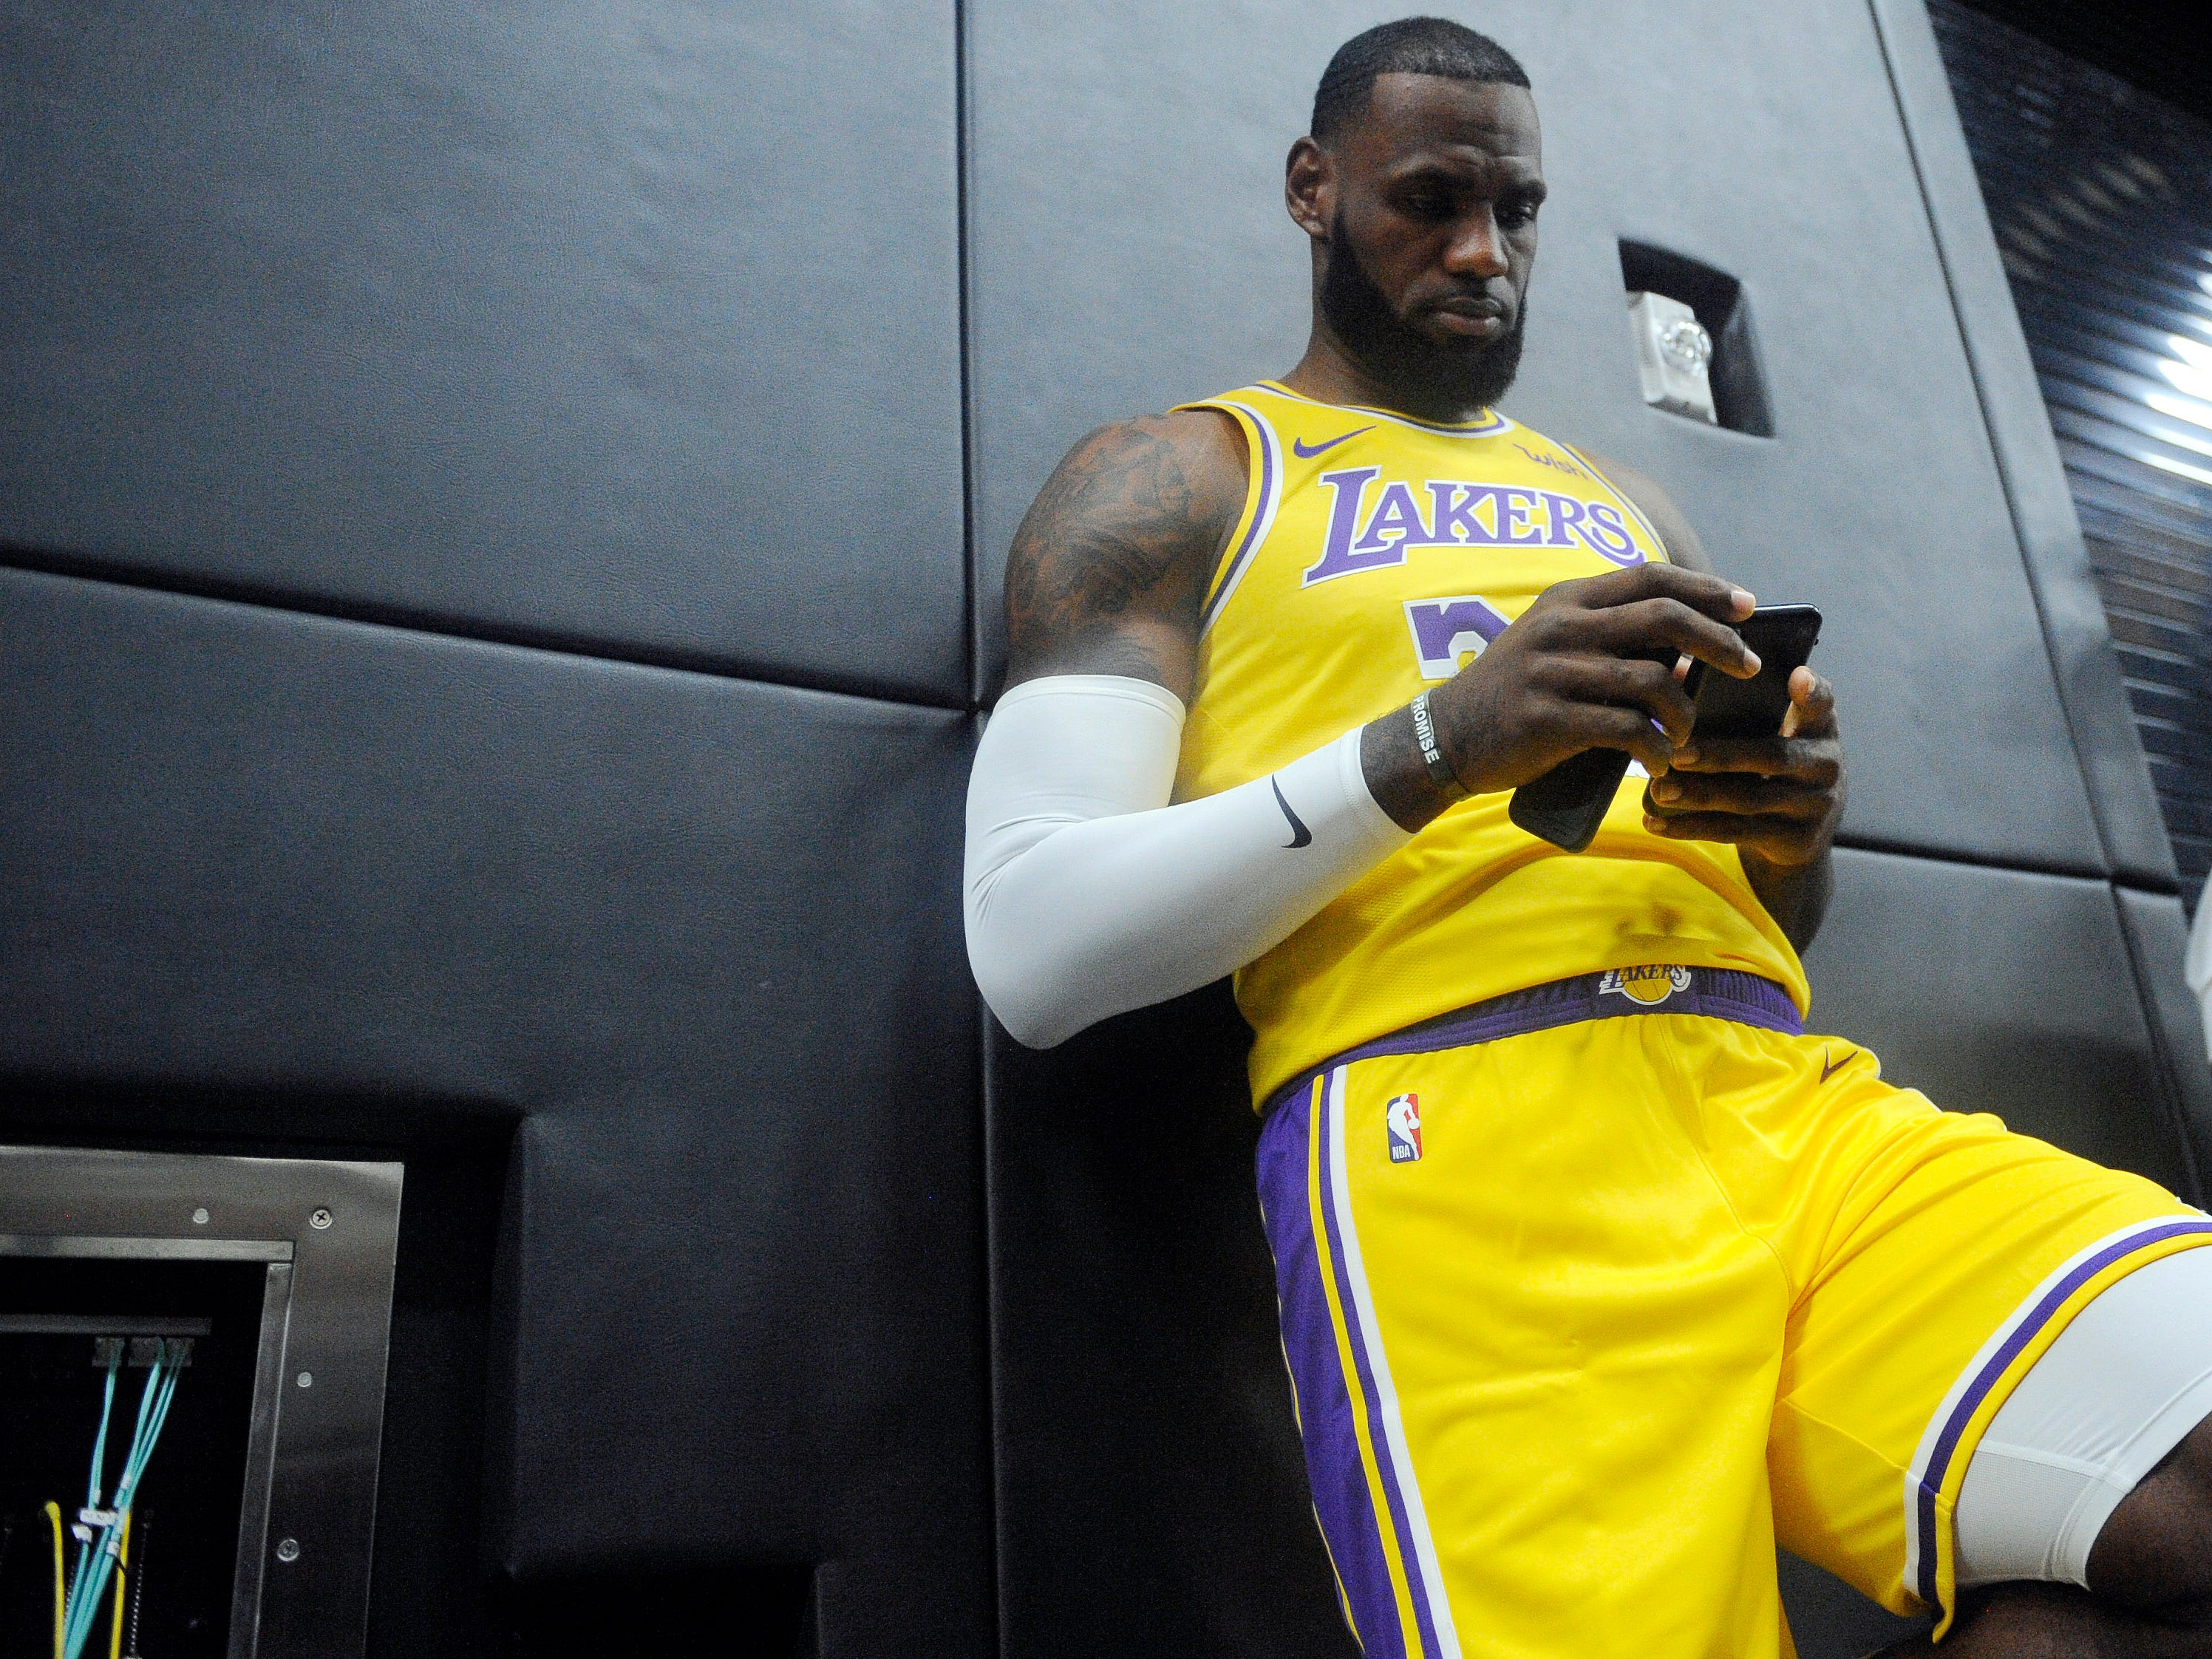 James takes a moment to check his phone during media day.